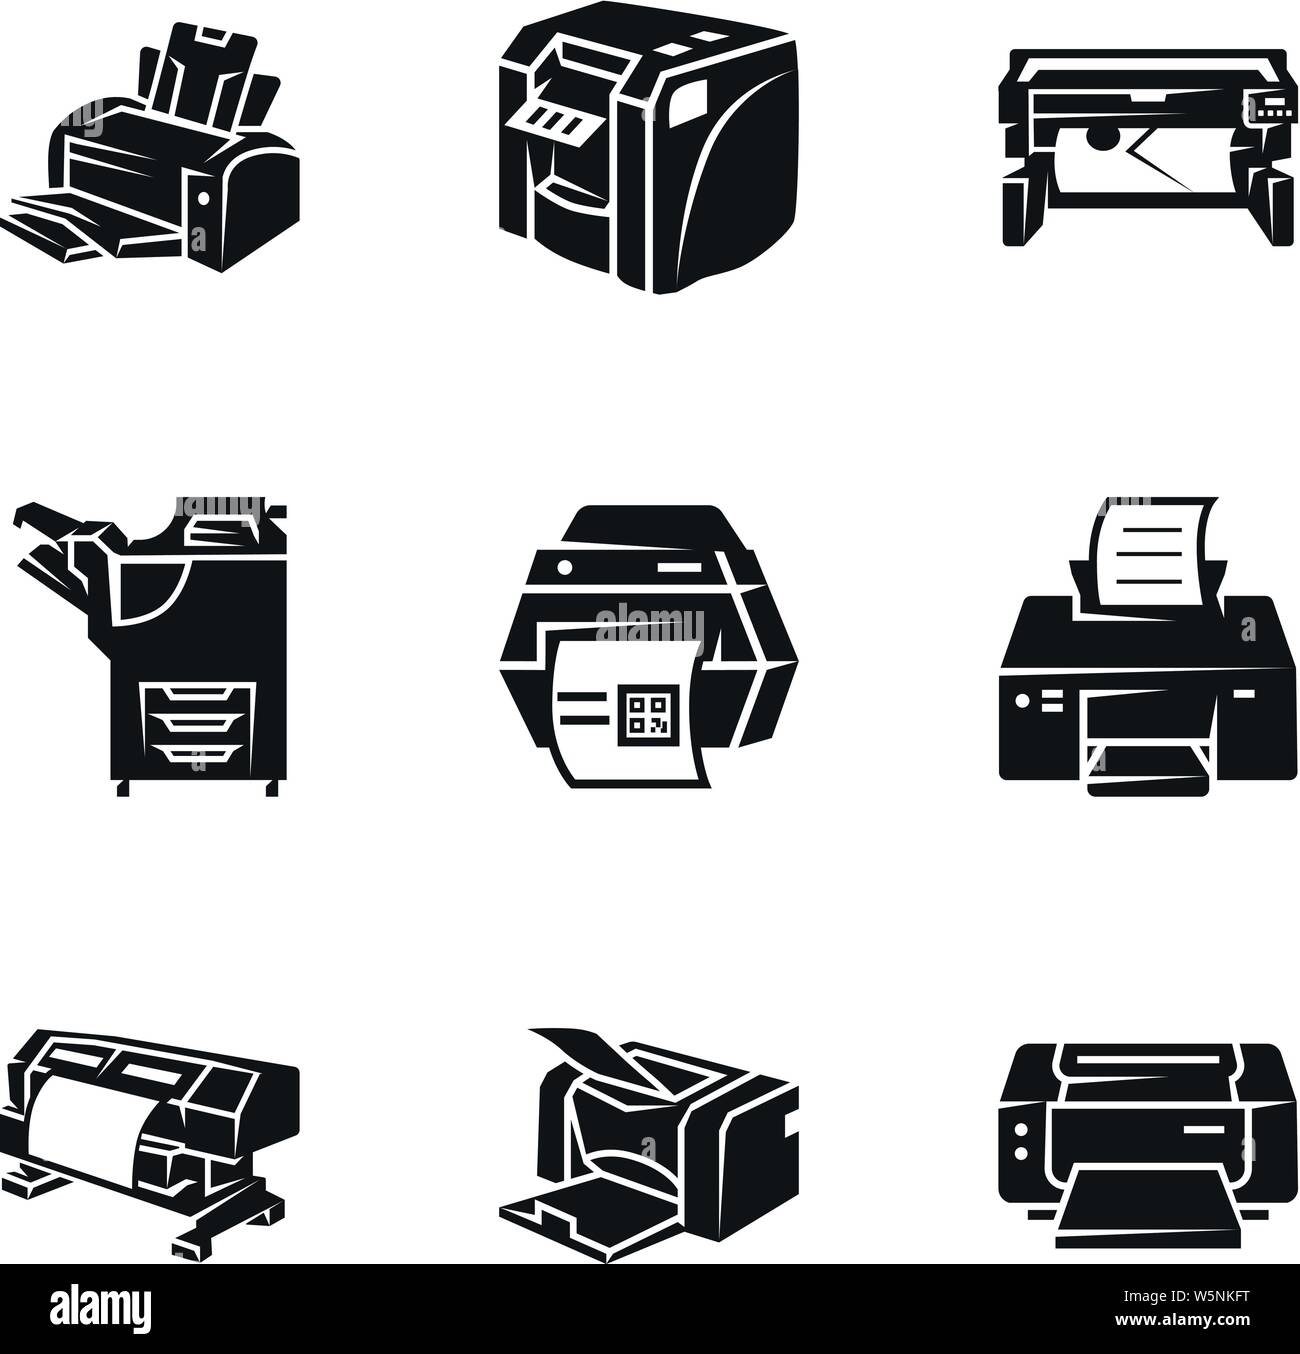 modern printer icon set simple set of 9 modern printer vector icons for web design isolated on white background stock vector image art alamy https www alamy com modern printer icon set simple set of 9 modern printer vector icons for web design isolated on white background image261705132 html